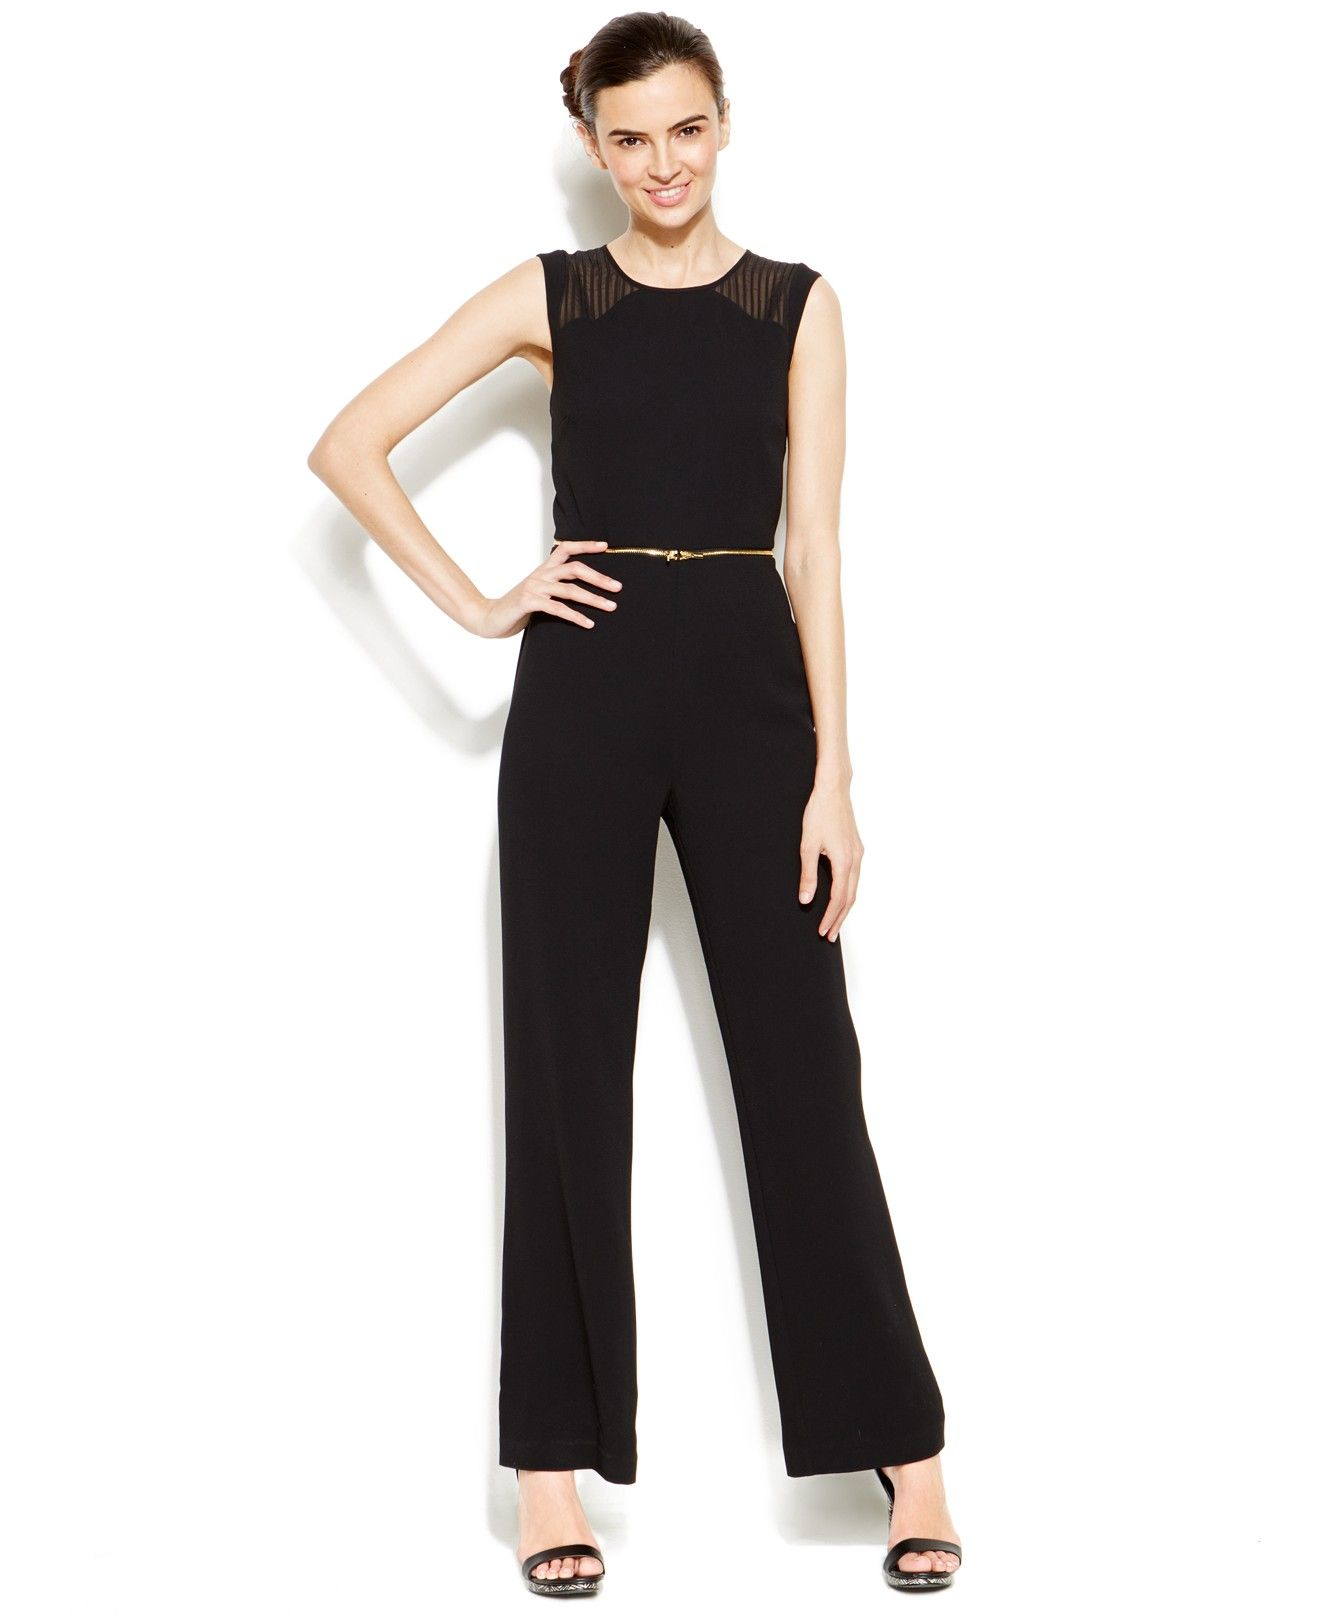 10031a21490f5 Calvin Klein Zippered-Waist Jumpsuit - Jumpsuits & Rompers - Women - Macy's